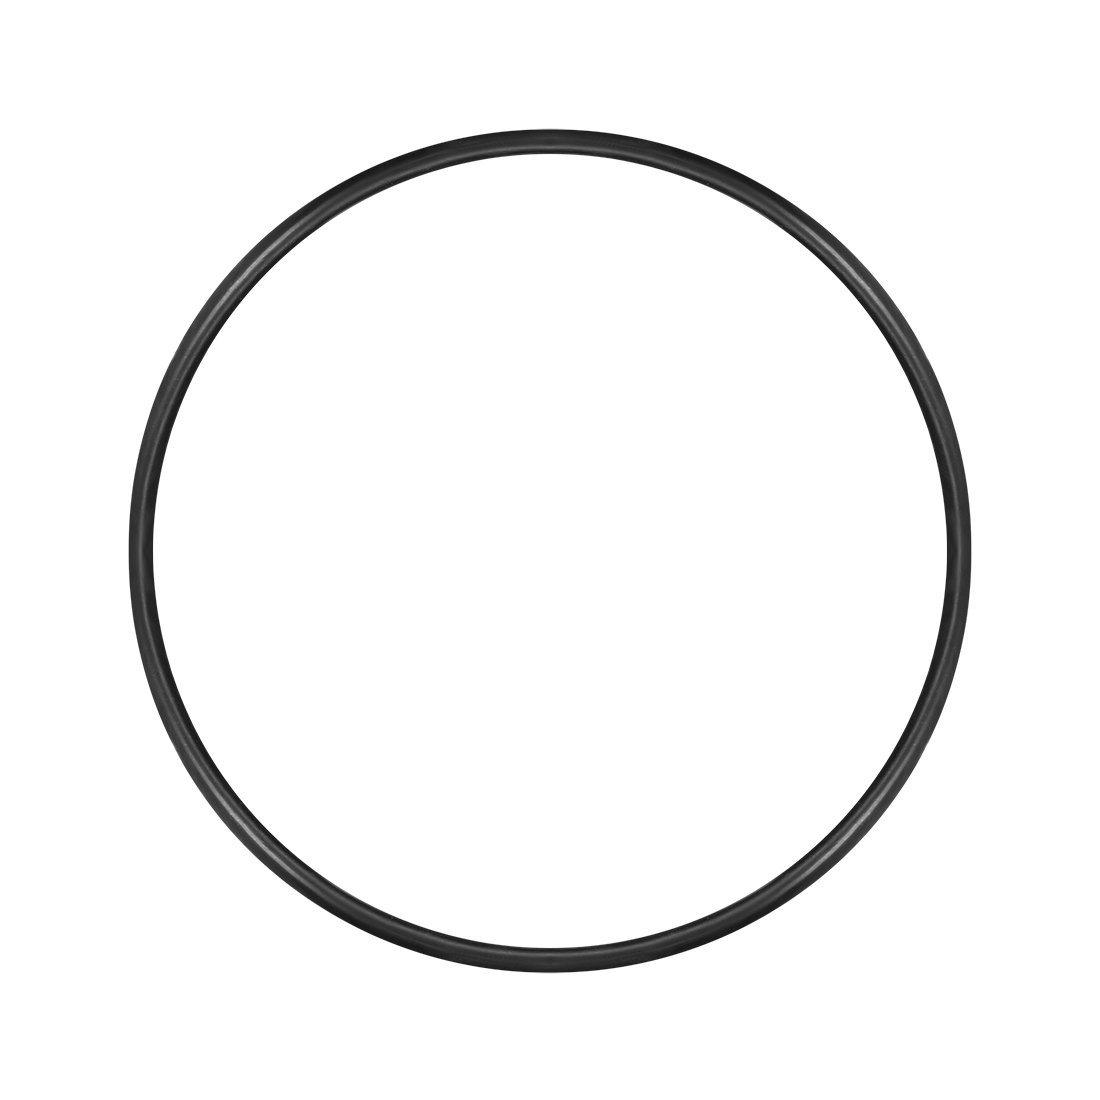 7mm OD Round Seal Gasket Pack of 20 uxcell O-Rings Nitrile Rubber 5mm Inner Diameter 1mm Width